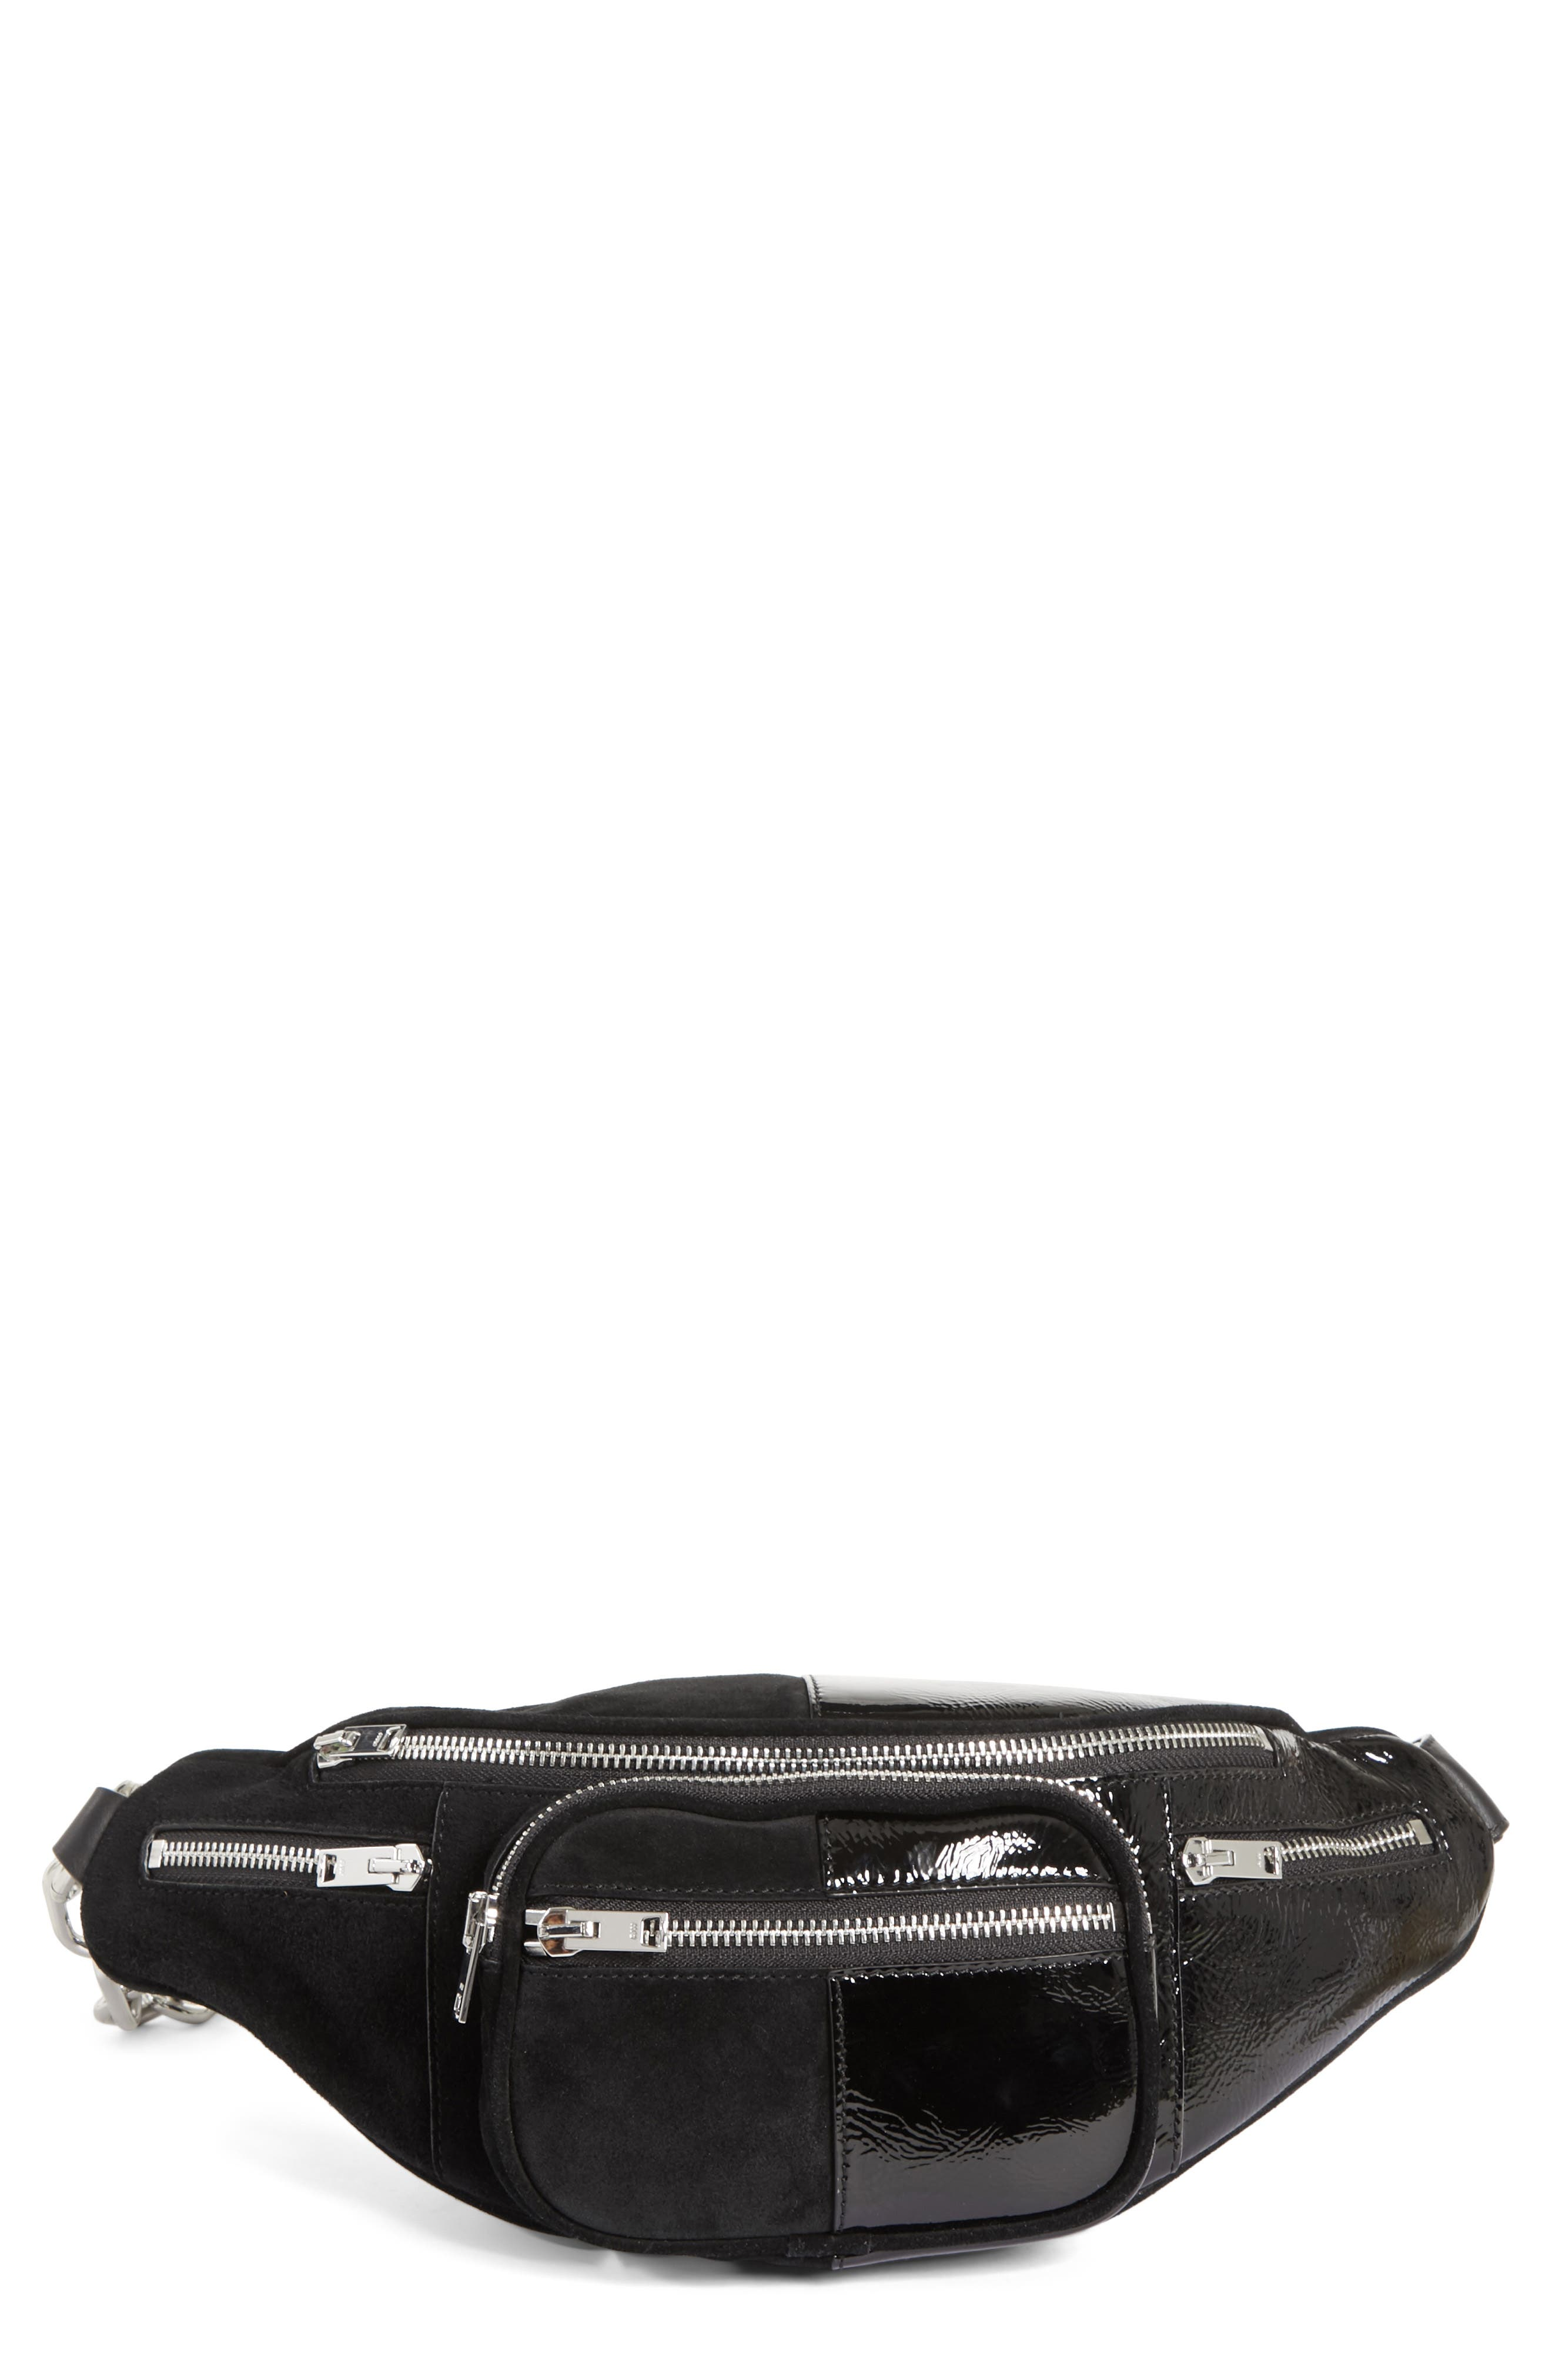 Attica Leather & Suede Fanny Pack - Black